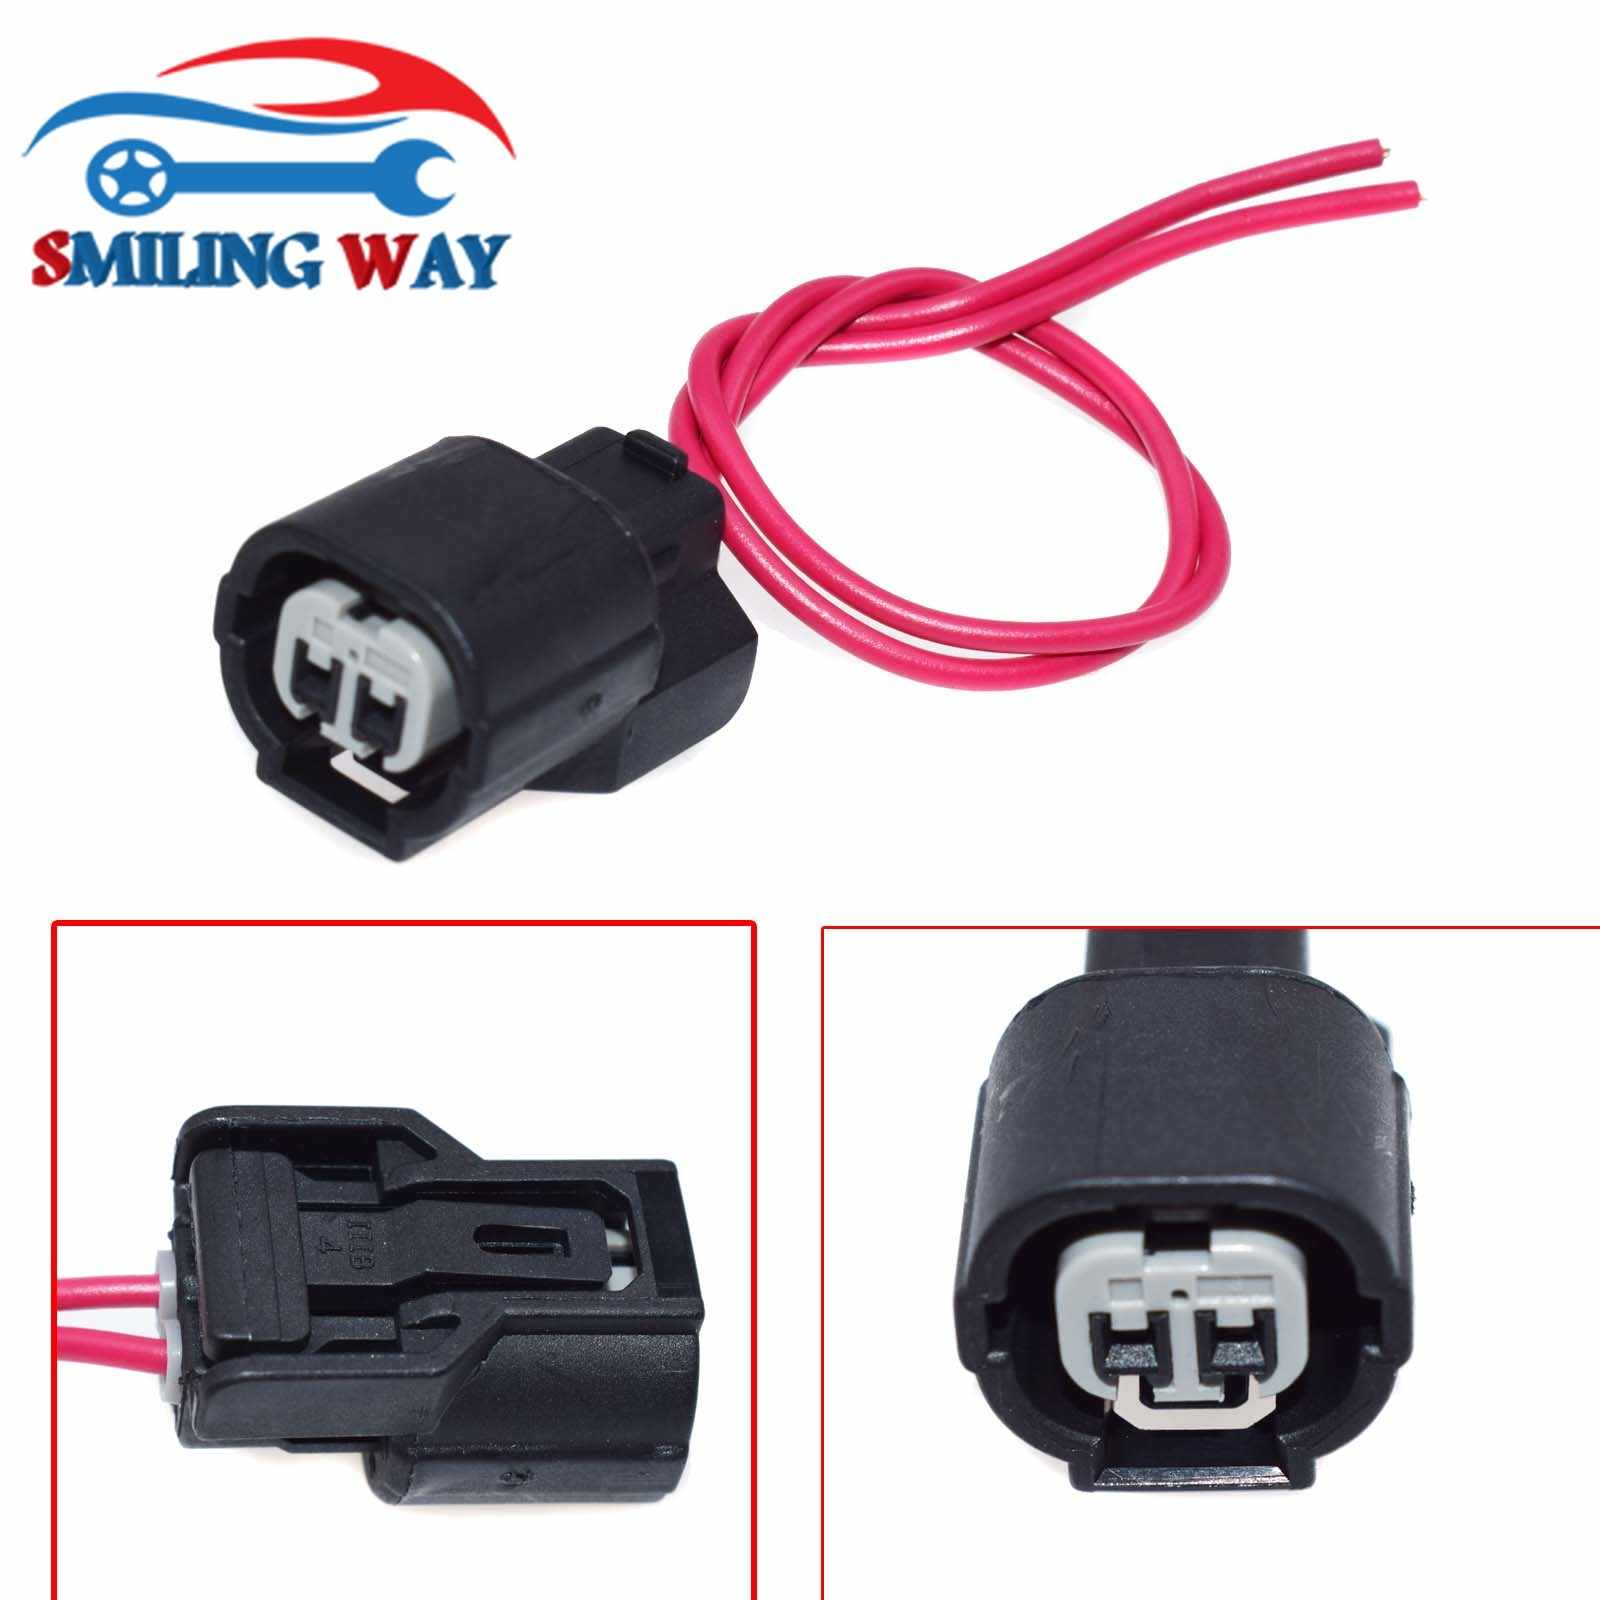 smiling way# iat ect vtec connector wire harness wiring pigtail plug for  honda acura civic